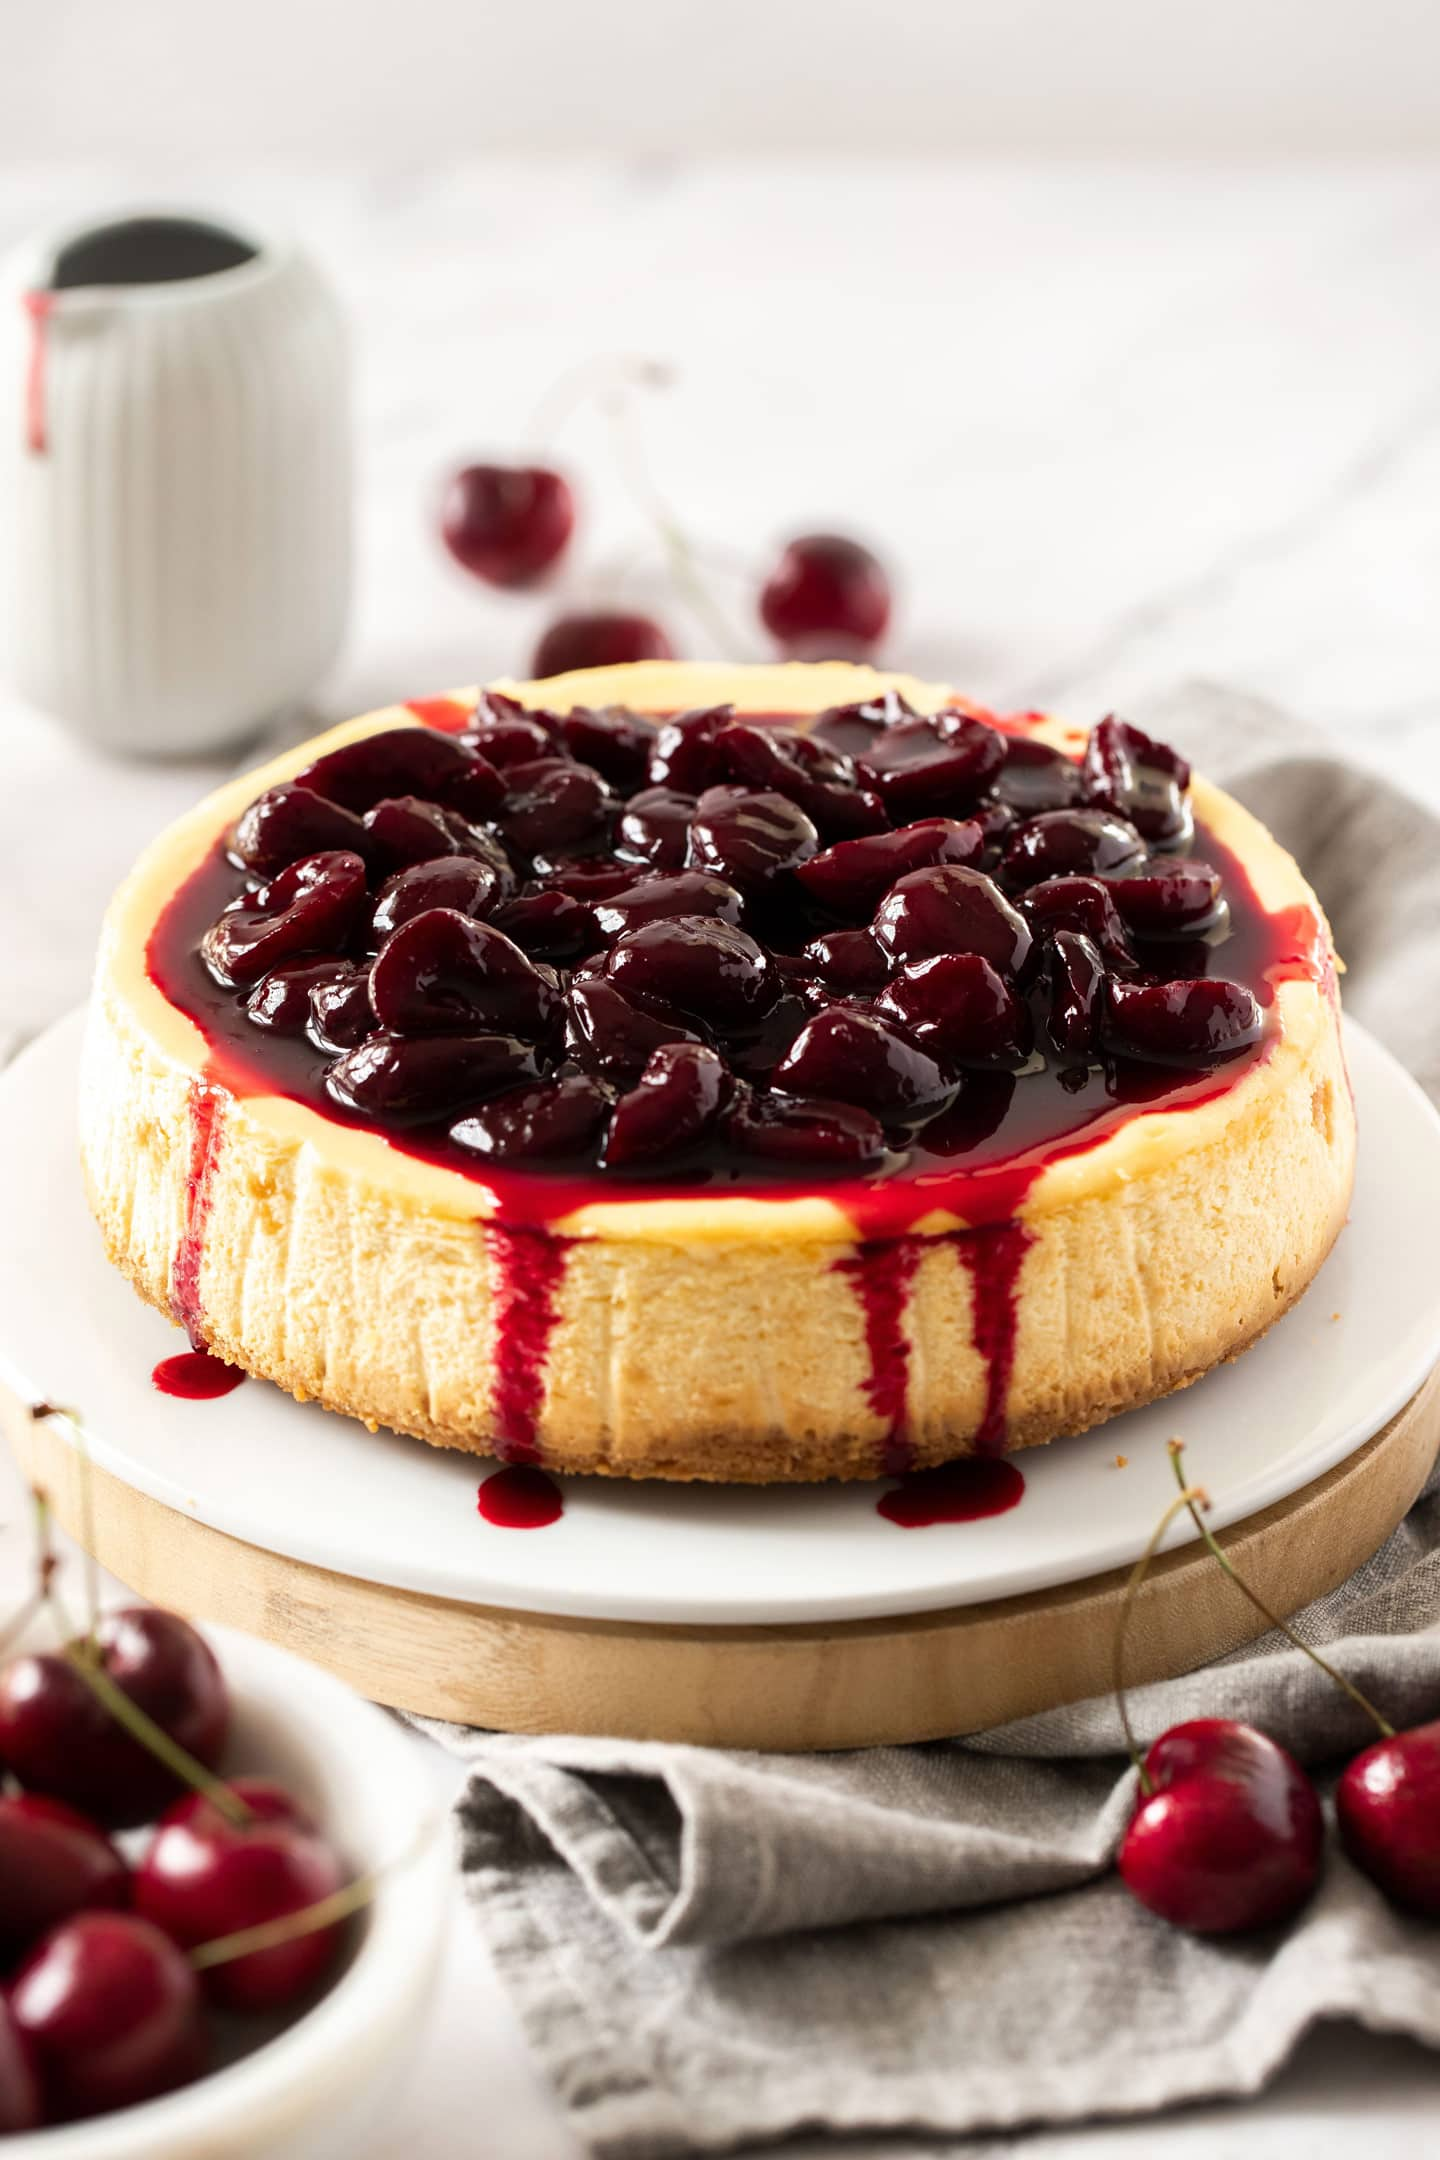 A cheesecake topped with cherry sauce on a white cake plate